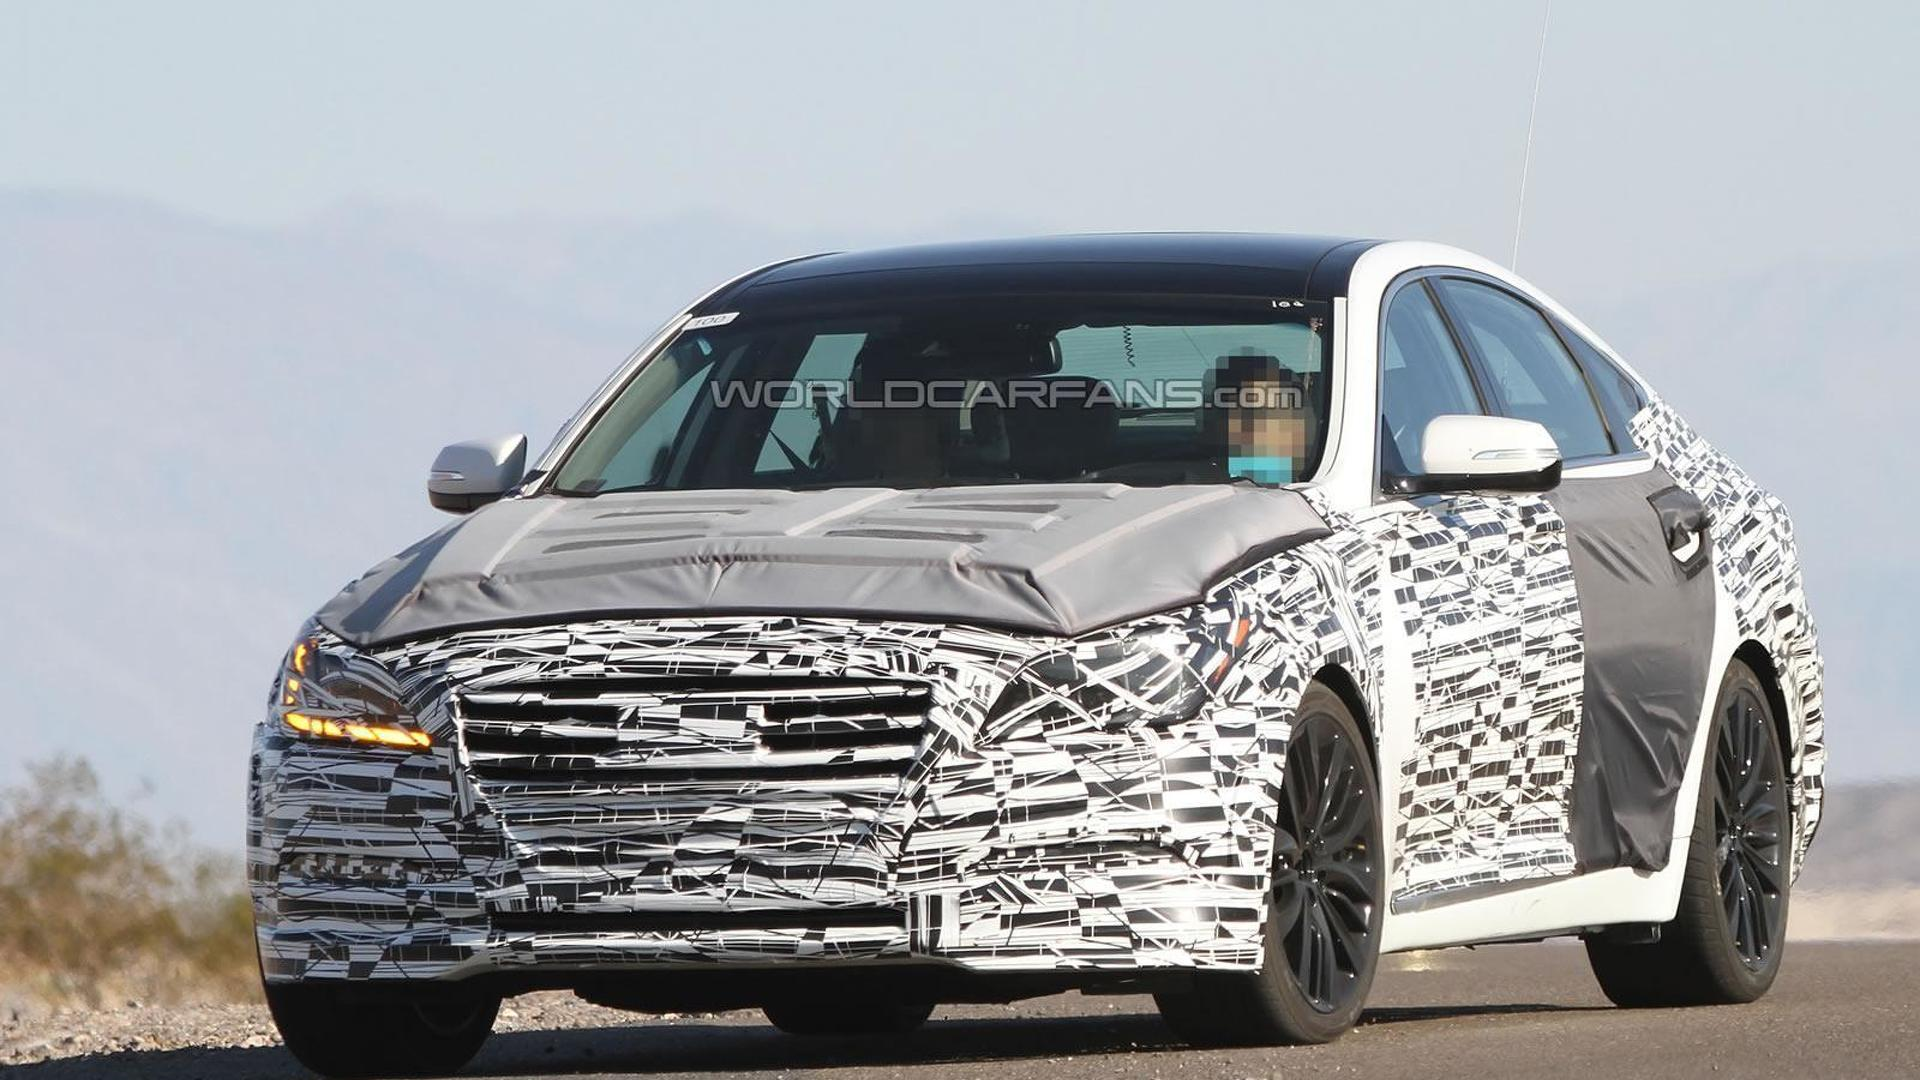 2014 Hyundai Genesis confirmed with HTRAC all-wheel drive system